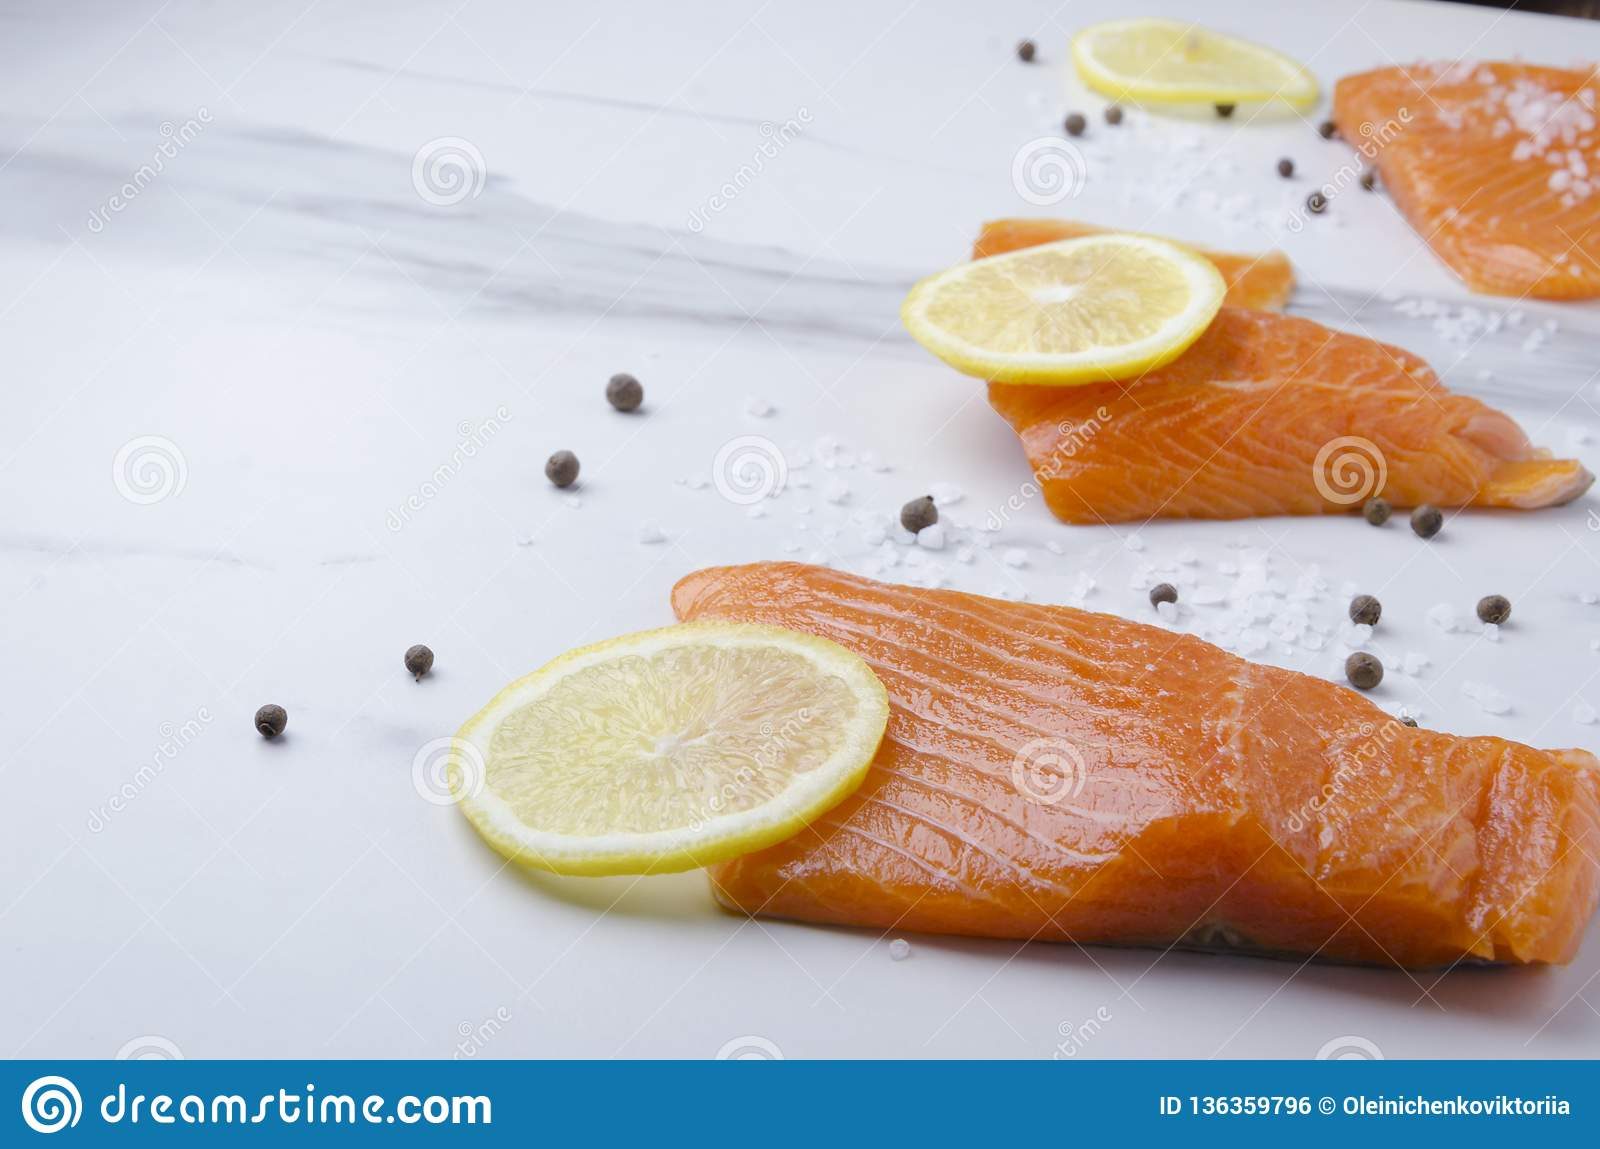 Fresh salmon with slices of lemon and pepper on marble table.Closeup of fish